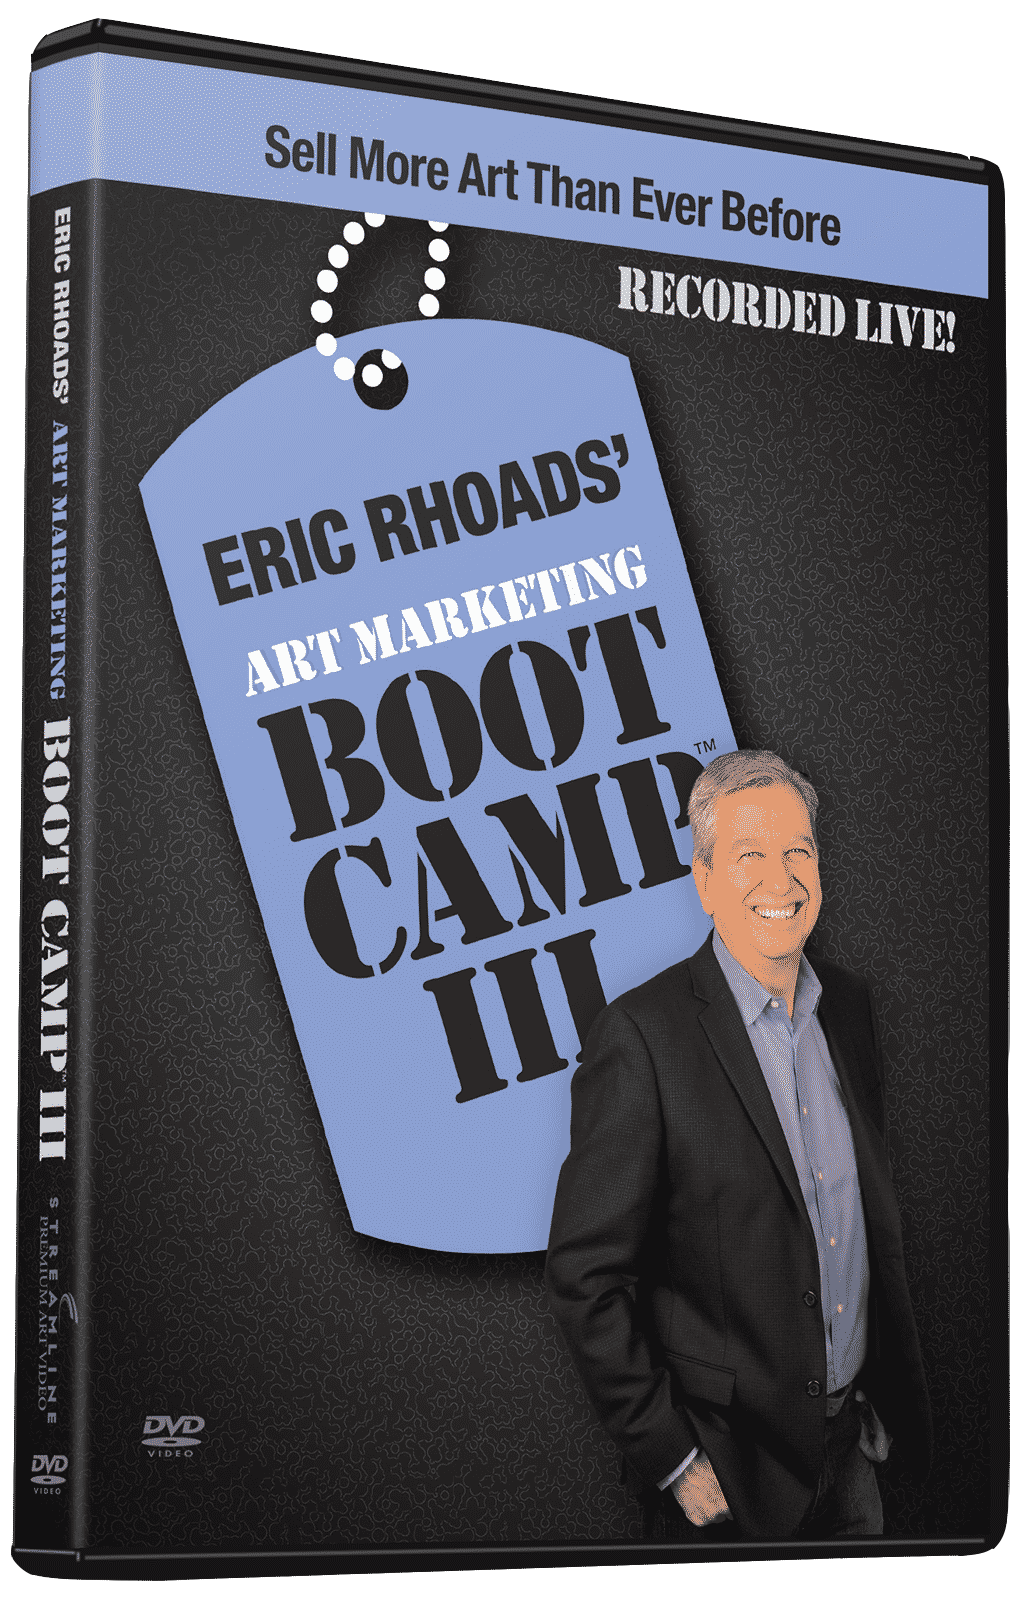 Eric Rhoads' Art Marketing Boot Camp III